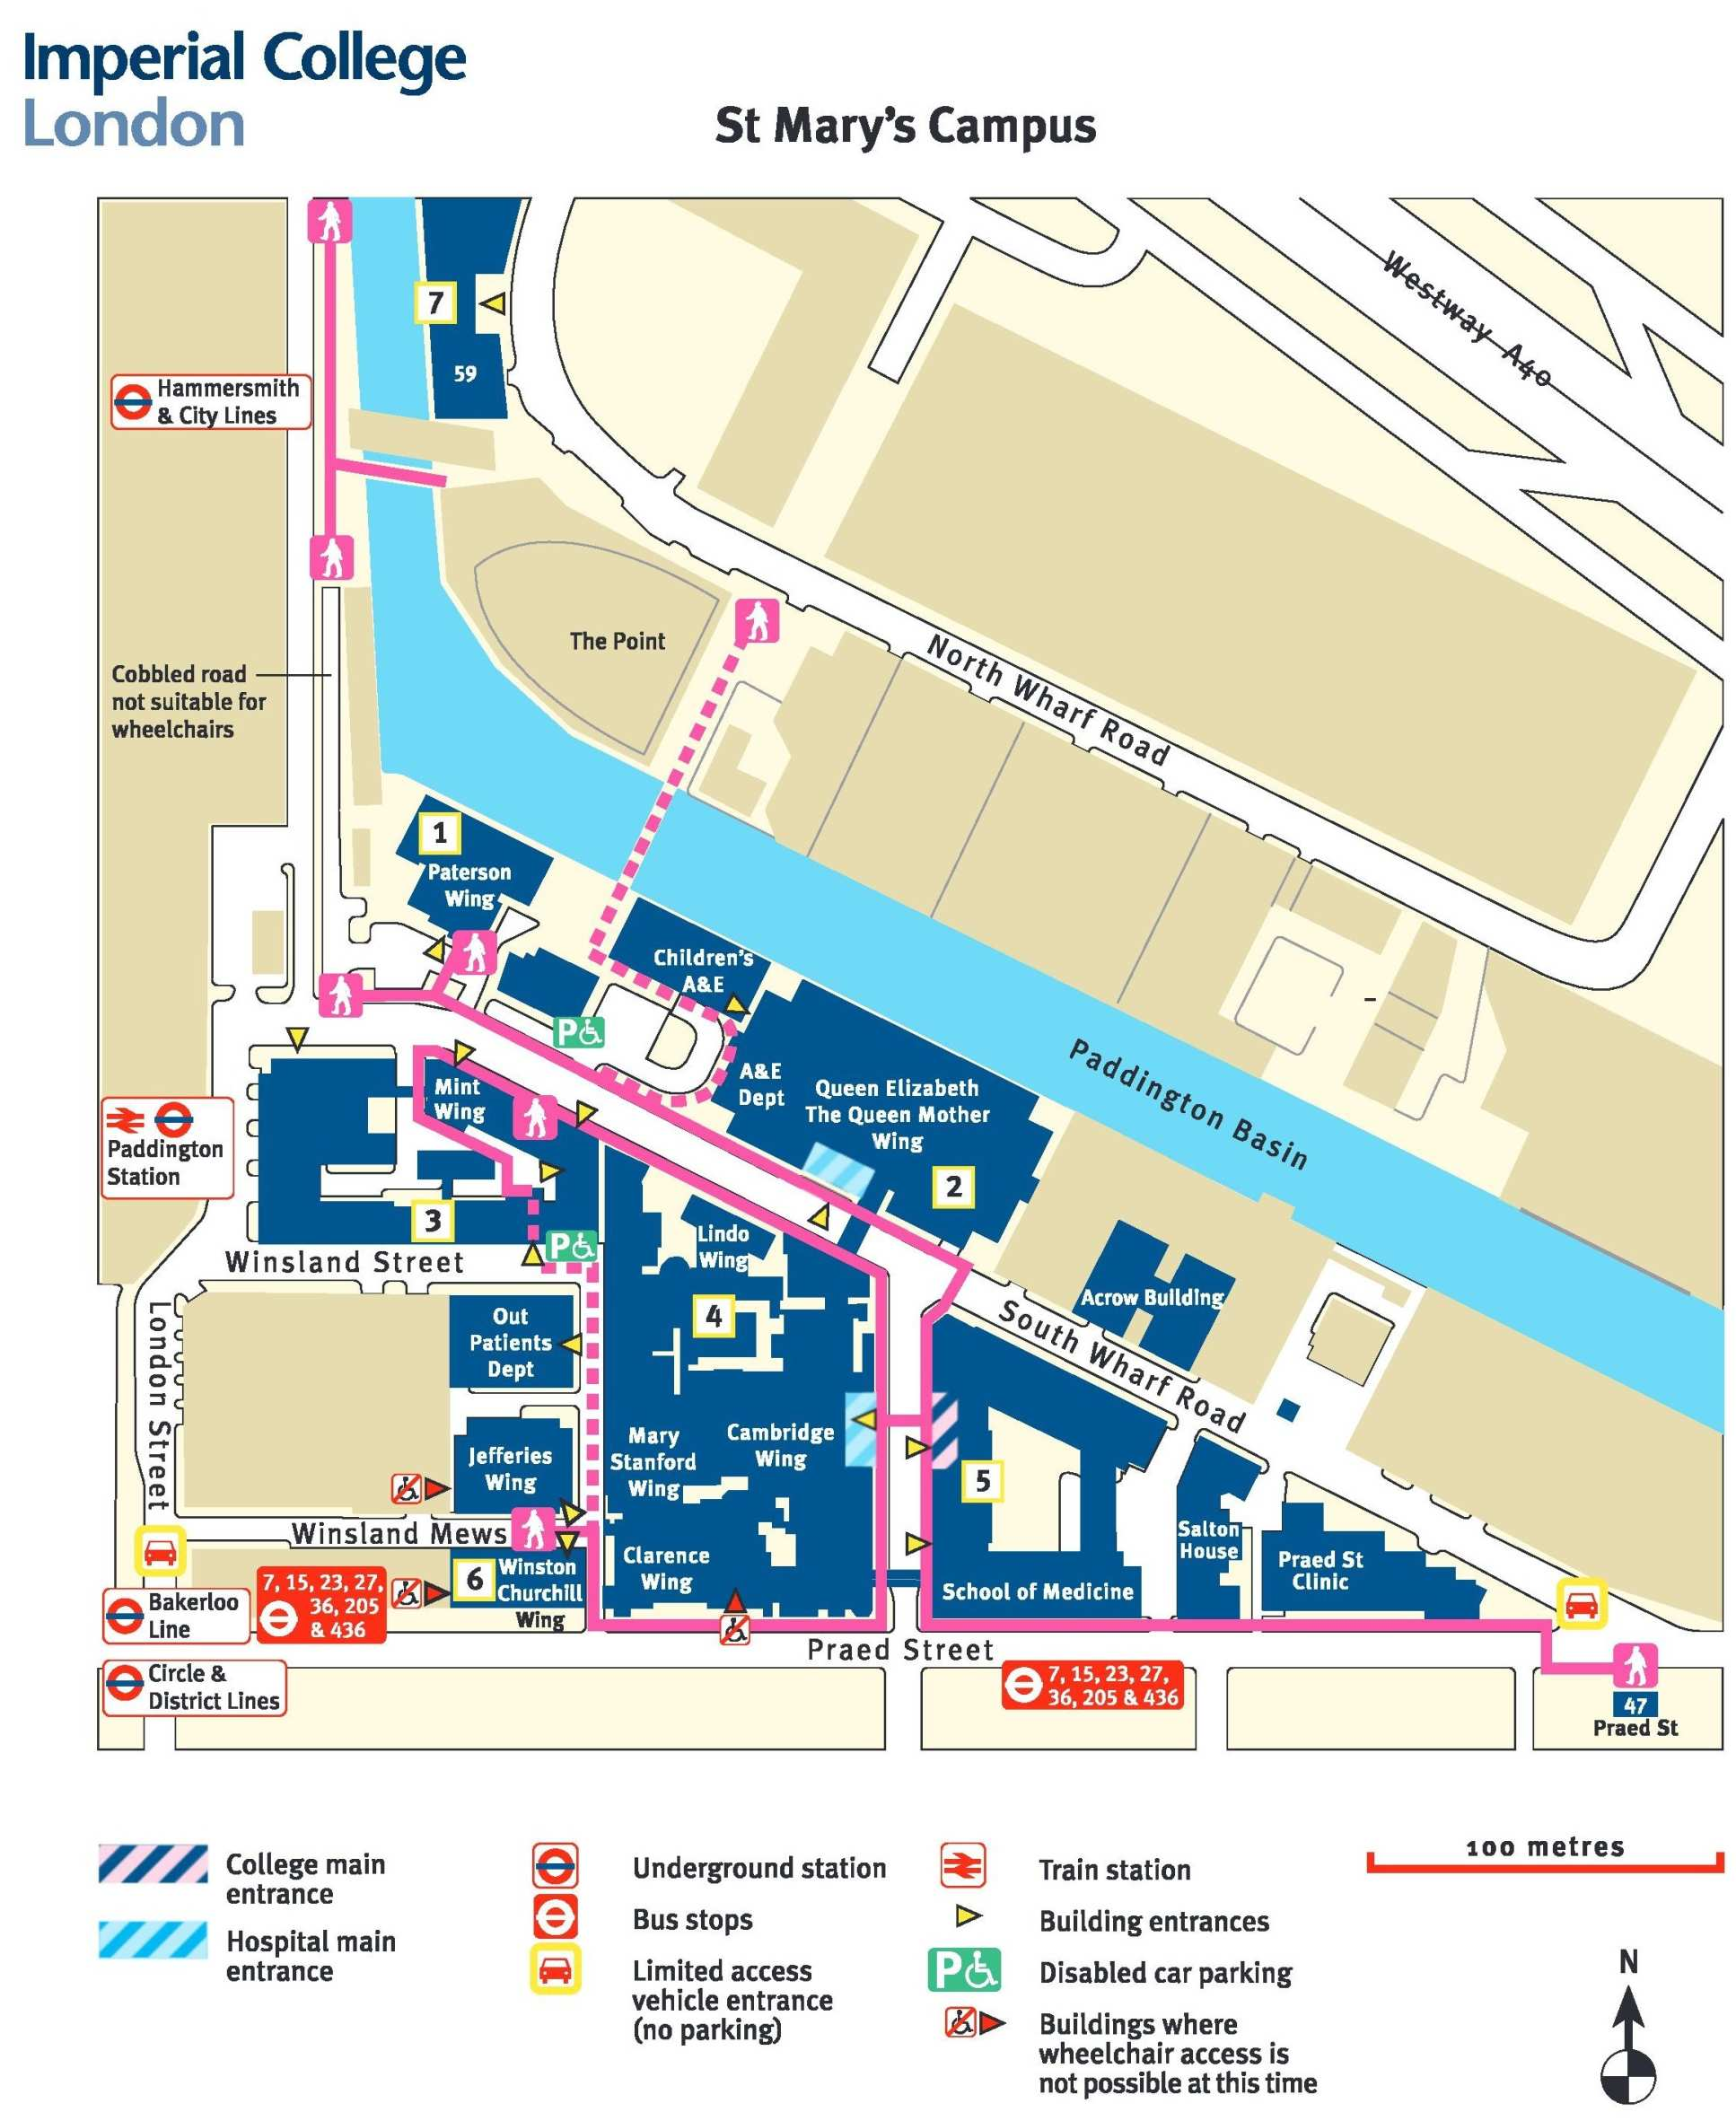 st marys campus map St Mary S Campus Research Groups Imperial College London st marys campus map